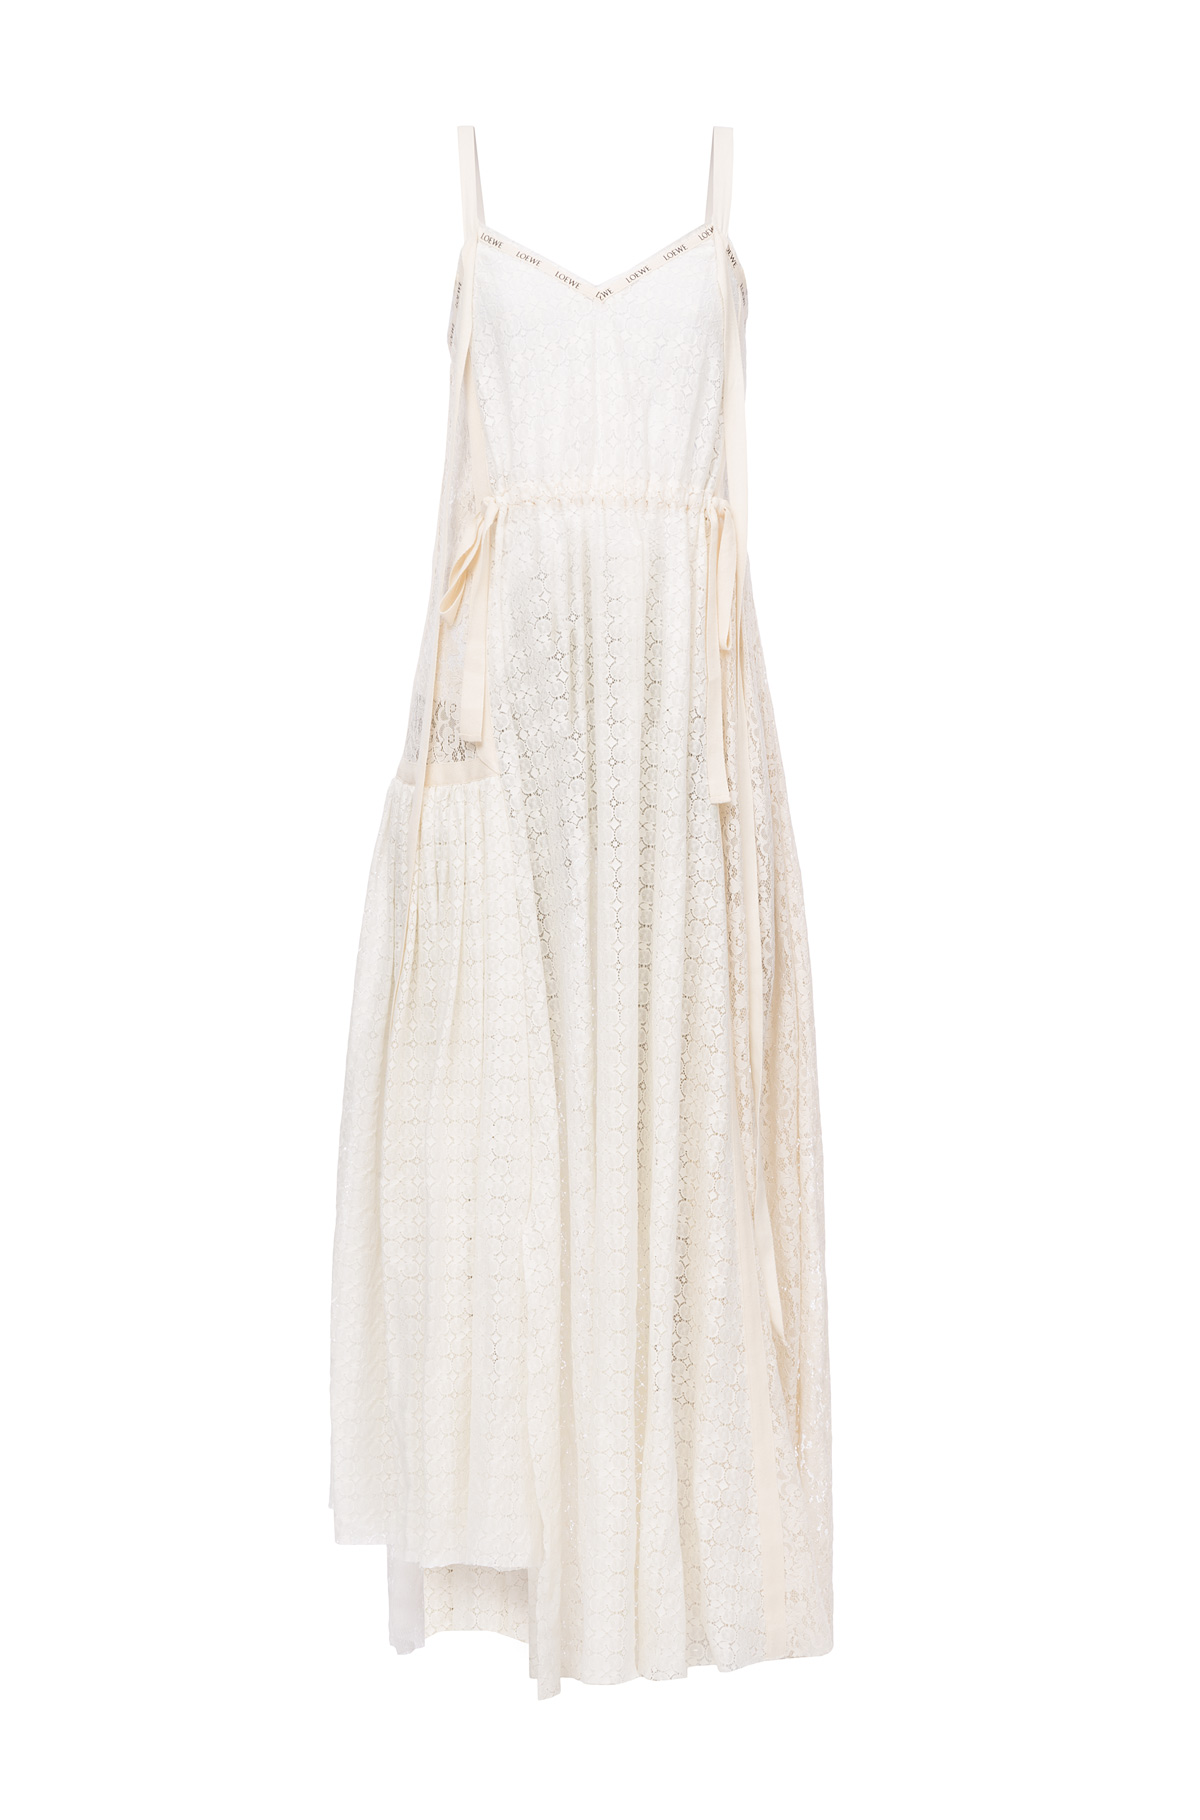 LOEWE Lace Camisole Dress Off-White front